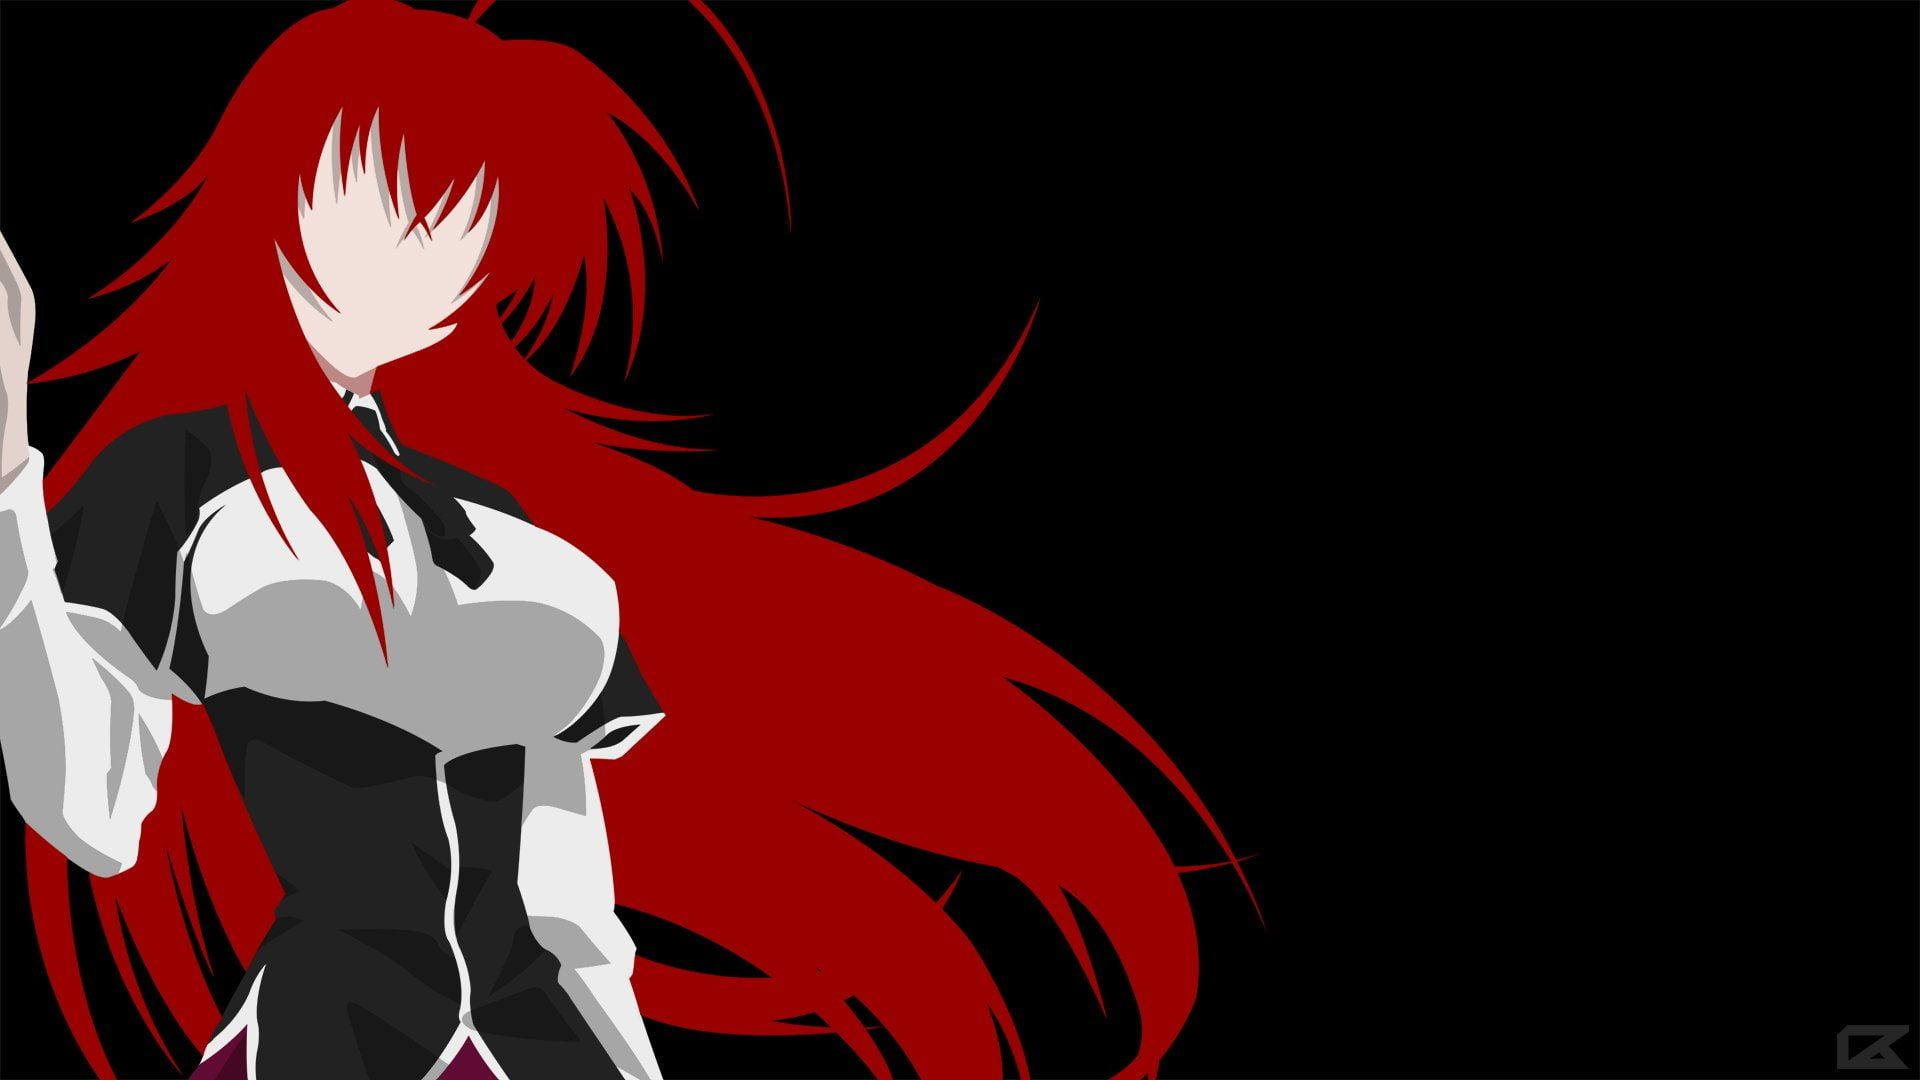 Anime High School Dxd Rias Gremory 1080p Wallpaper Hdwallpaper Desktop In 2020 Highschool Dxd Dxd Anime